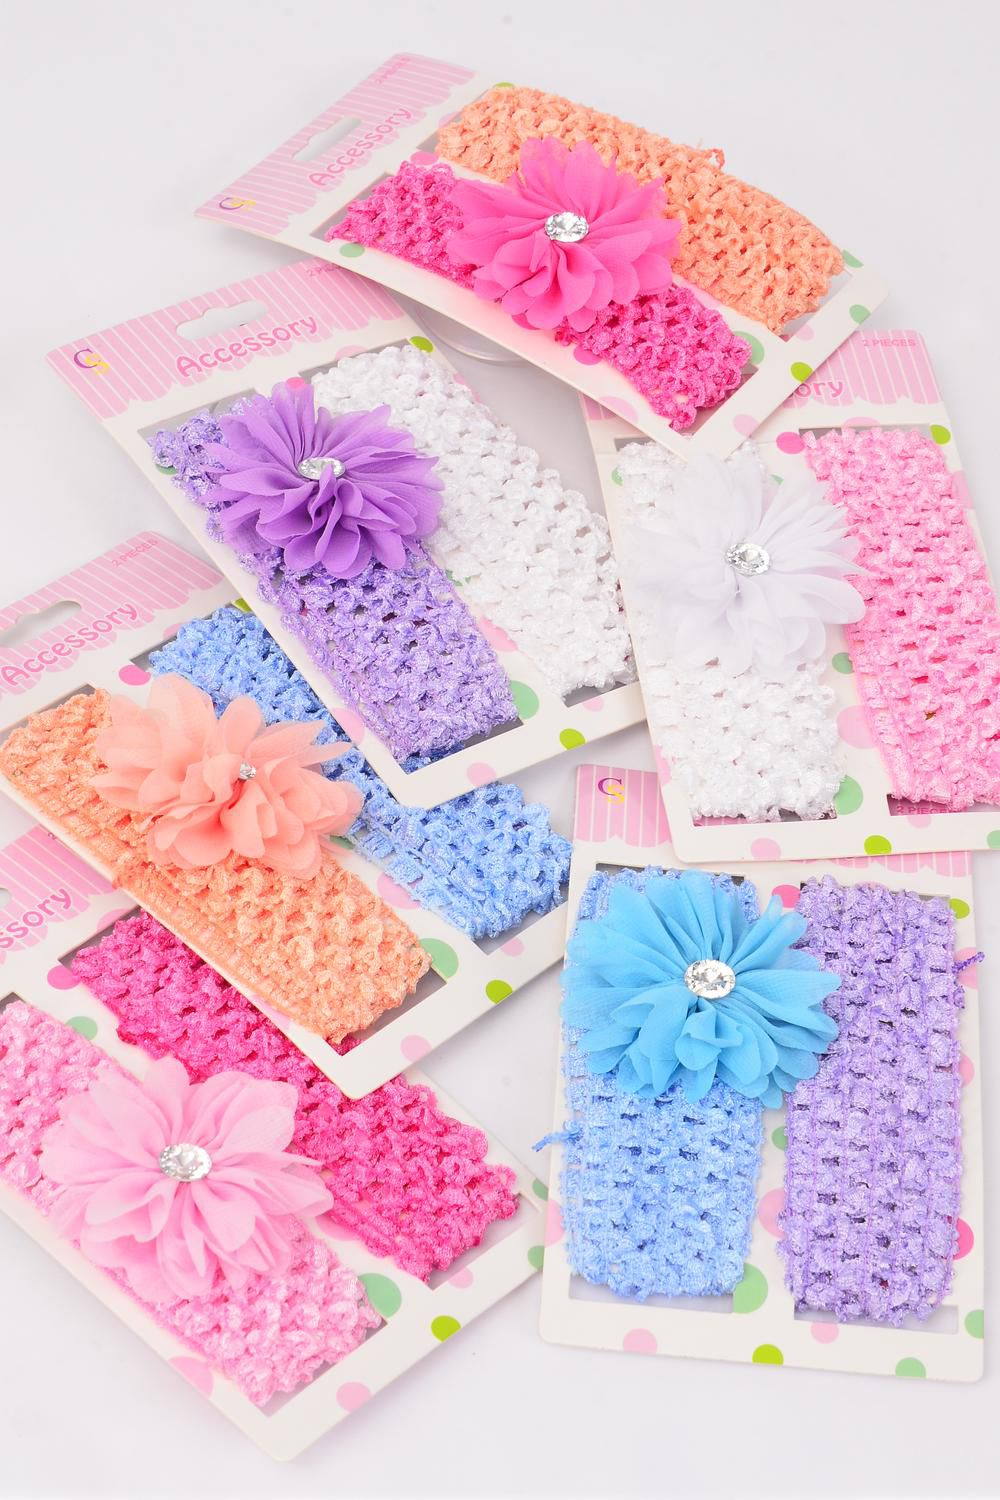 "Ballerina Headband 24 pcs Daisy Flower Stretch Pastel/DZ **Pastel** Stretch,Ballerina-1.5"",Flower-2.75"" wide,2 of each Color Asst, Display Card & OPP Bag & UPC Code"